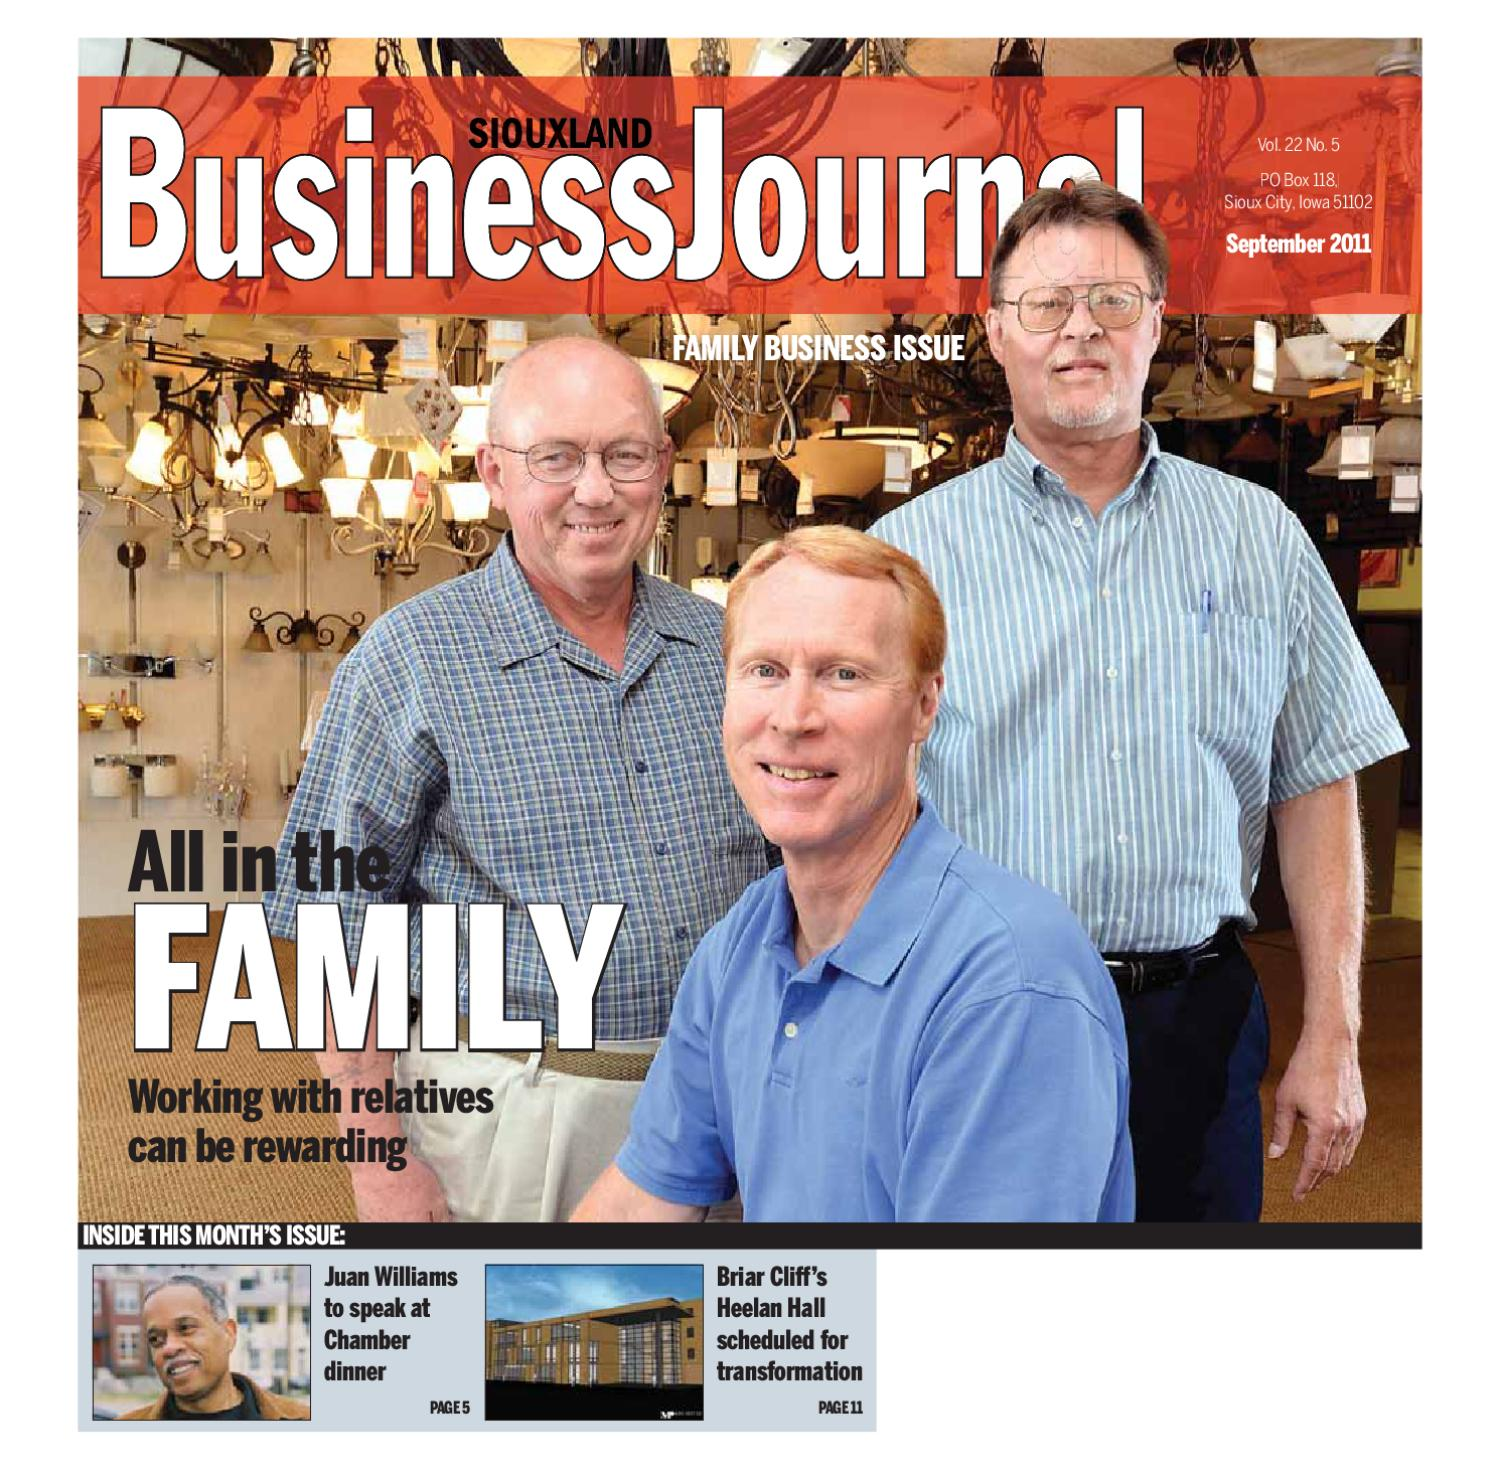 siouxland business journal september 2011 by sioux city journal